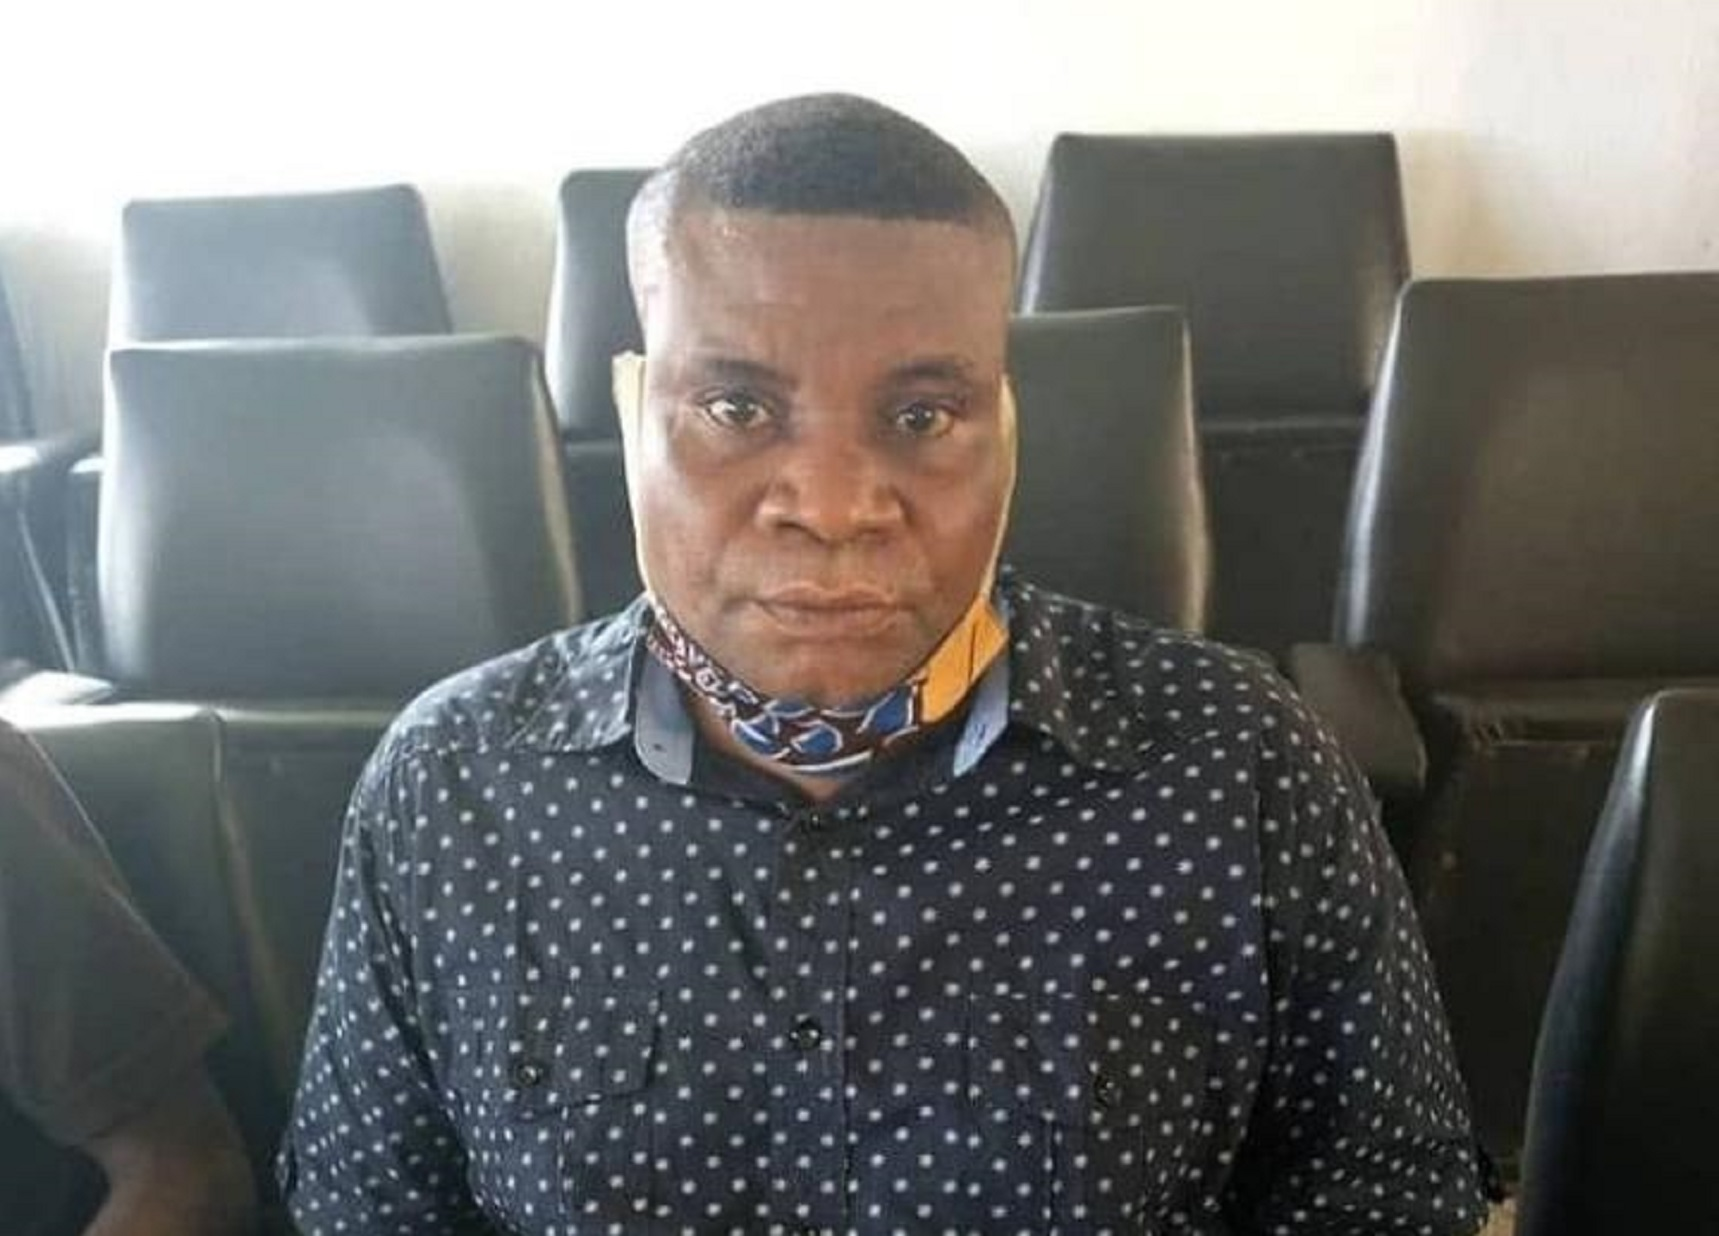 47-Year-Old Man Sentenced To Life Imprisonment For Raping 14-Year-Old Stepdaughter In Cross River State.